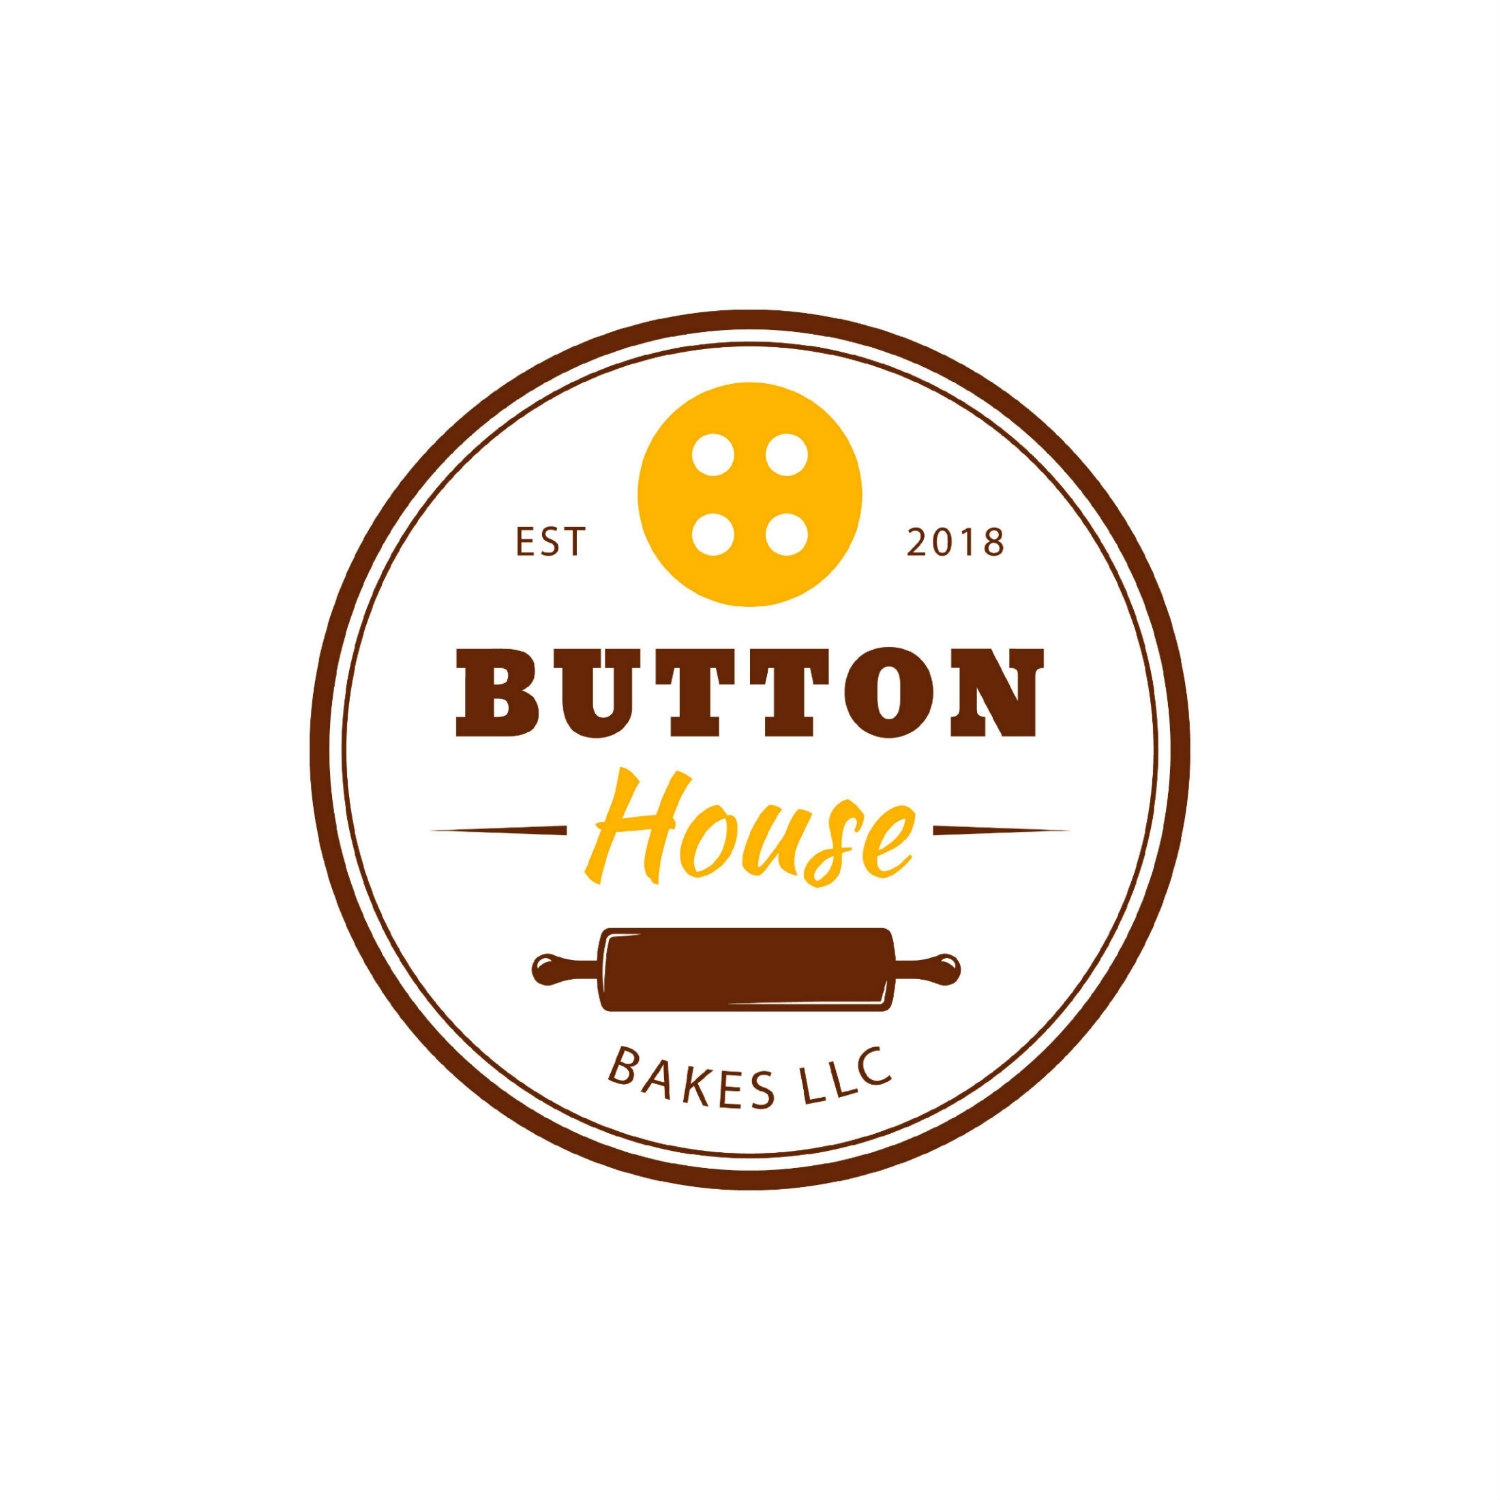 Button House Bakes LLC image